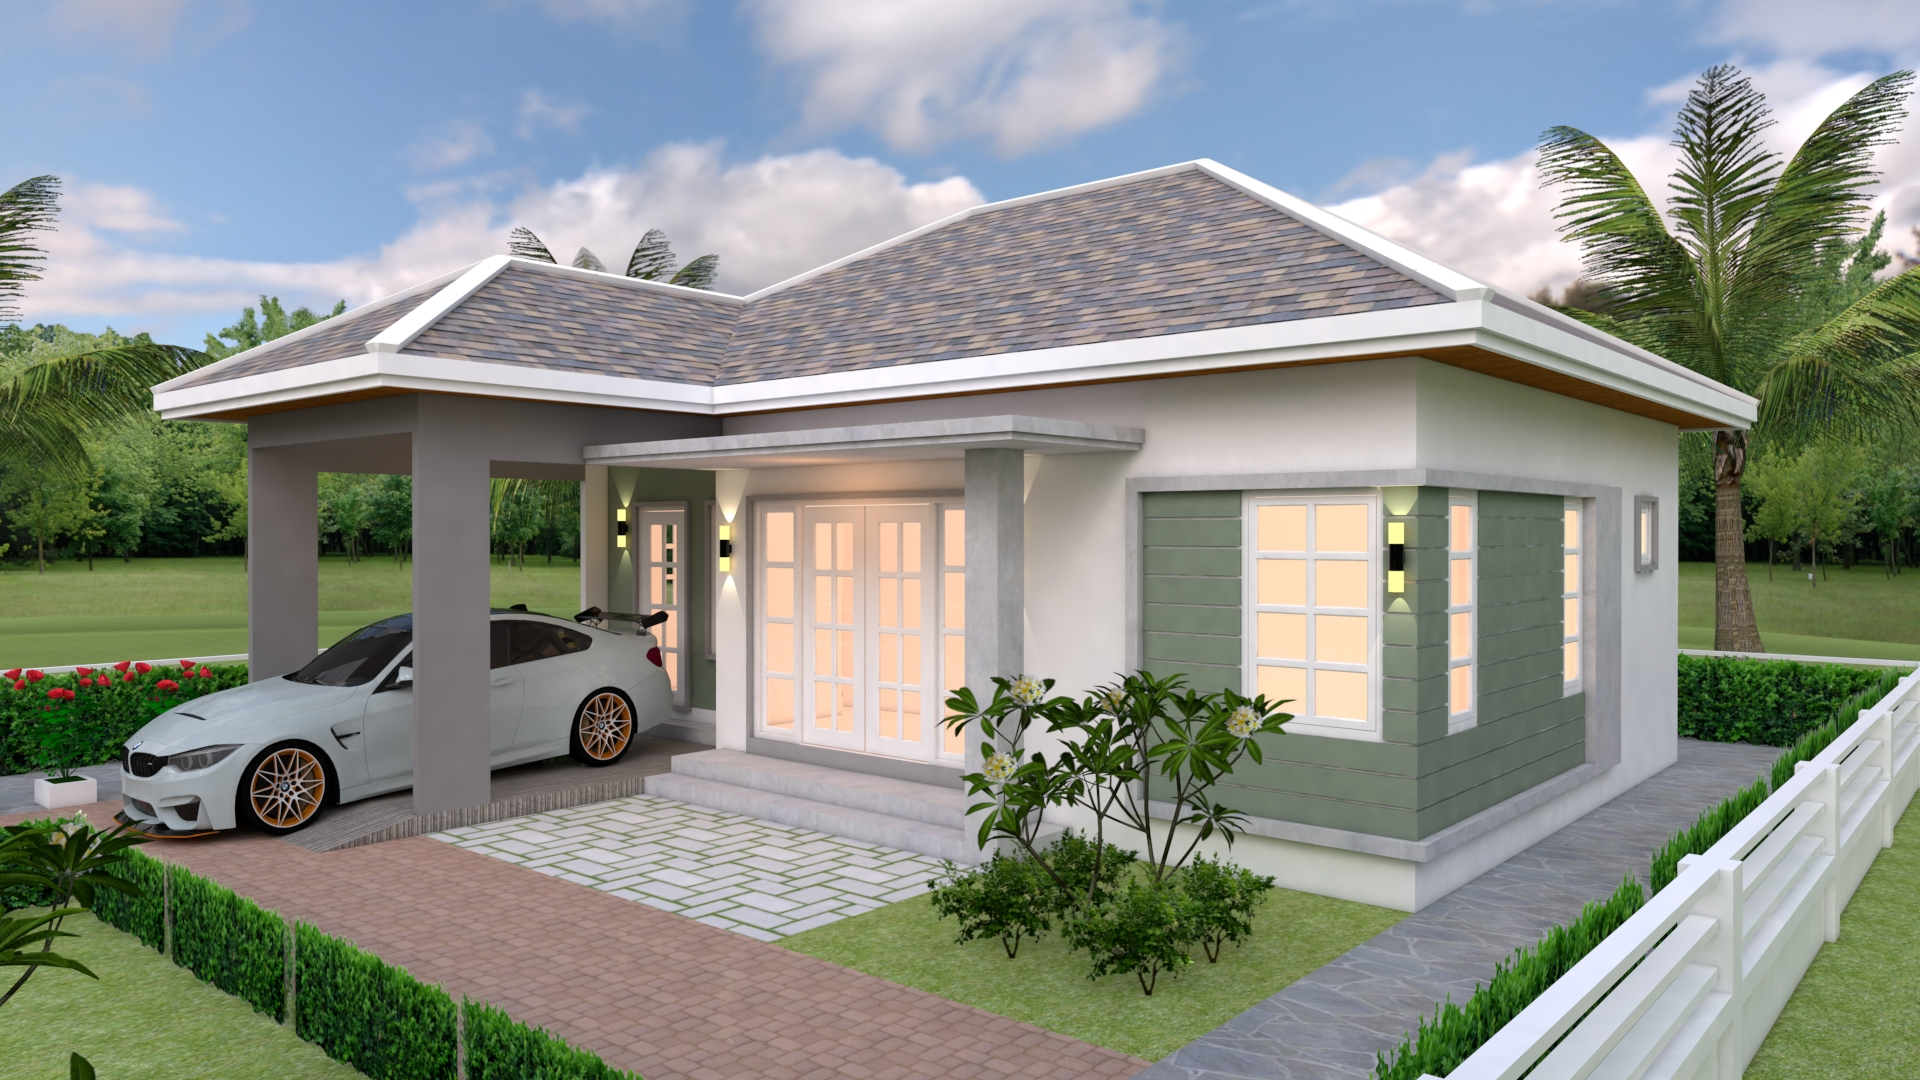 House Plans 10x10 with 3 Bedrooms - House Plans 3D